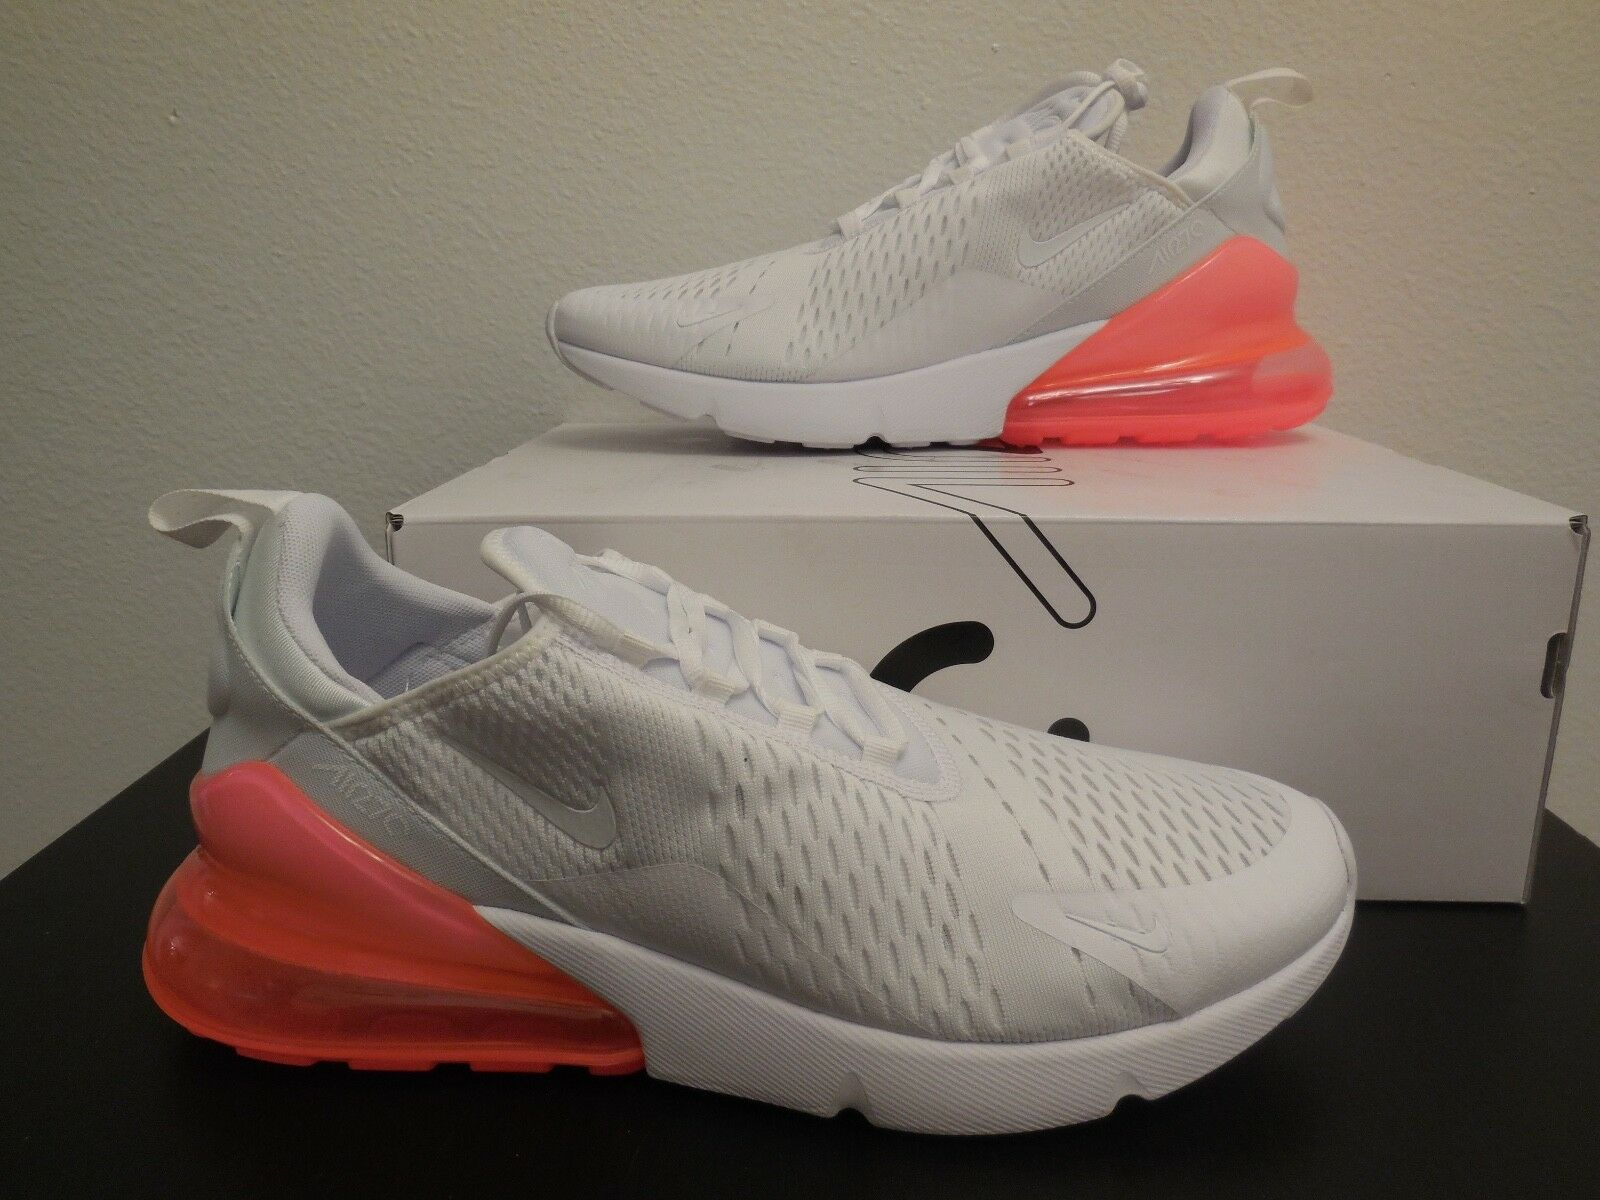 Men's Nike Air Max 270 shoes -White   Hot Punch- StyleAH8050 103 -Sz 11.5 -NEW